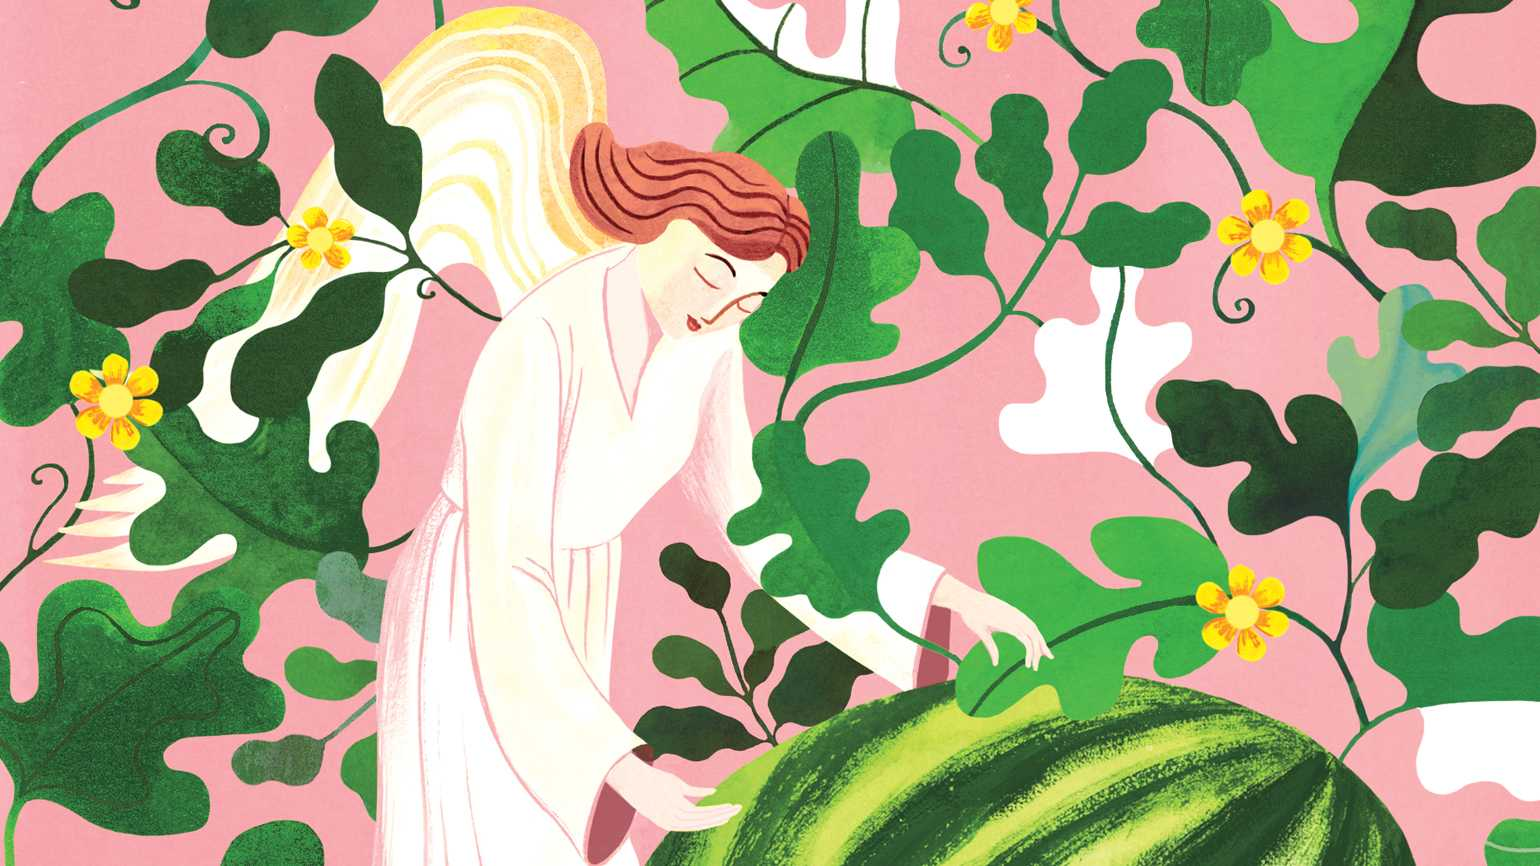 An illustration of an angel hovering over a watermelon; Illustration by Sarah Wilkins